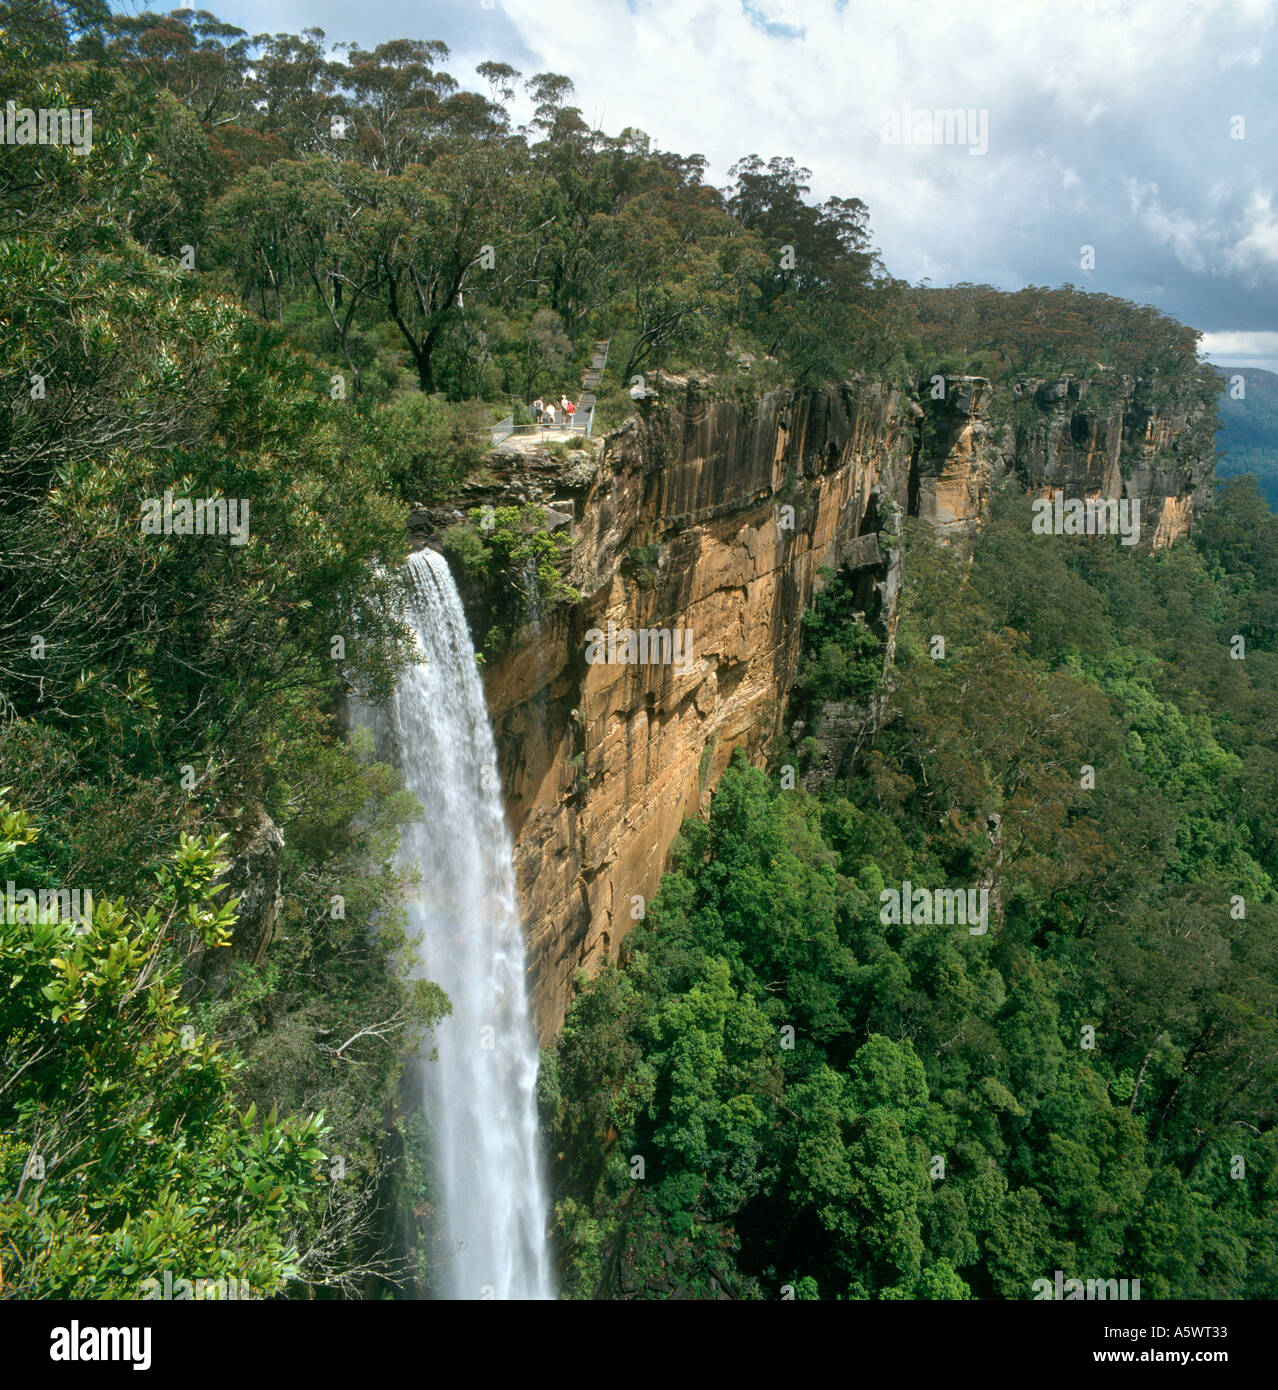 Fitzroy Falls et Yarrunga Valley, le Parc National de Morton, Southern Highlands, New South Wales, Australie Photo Stock